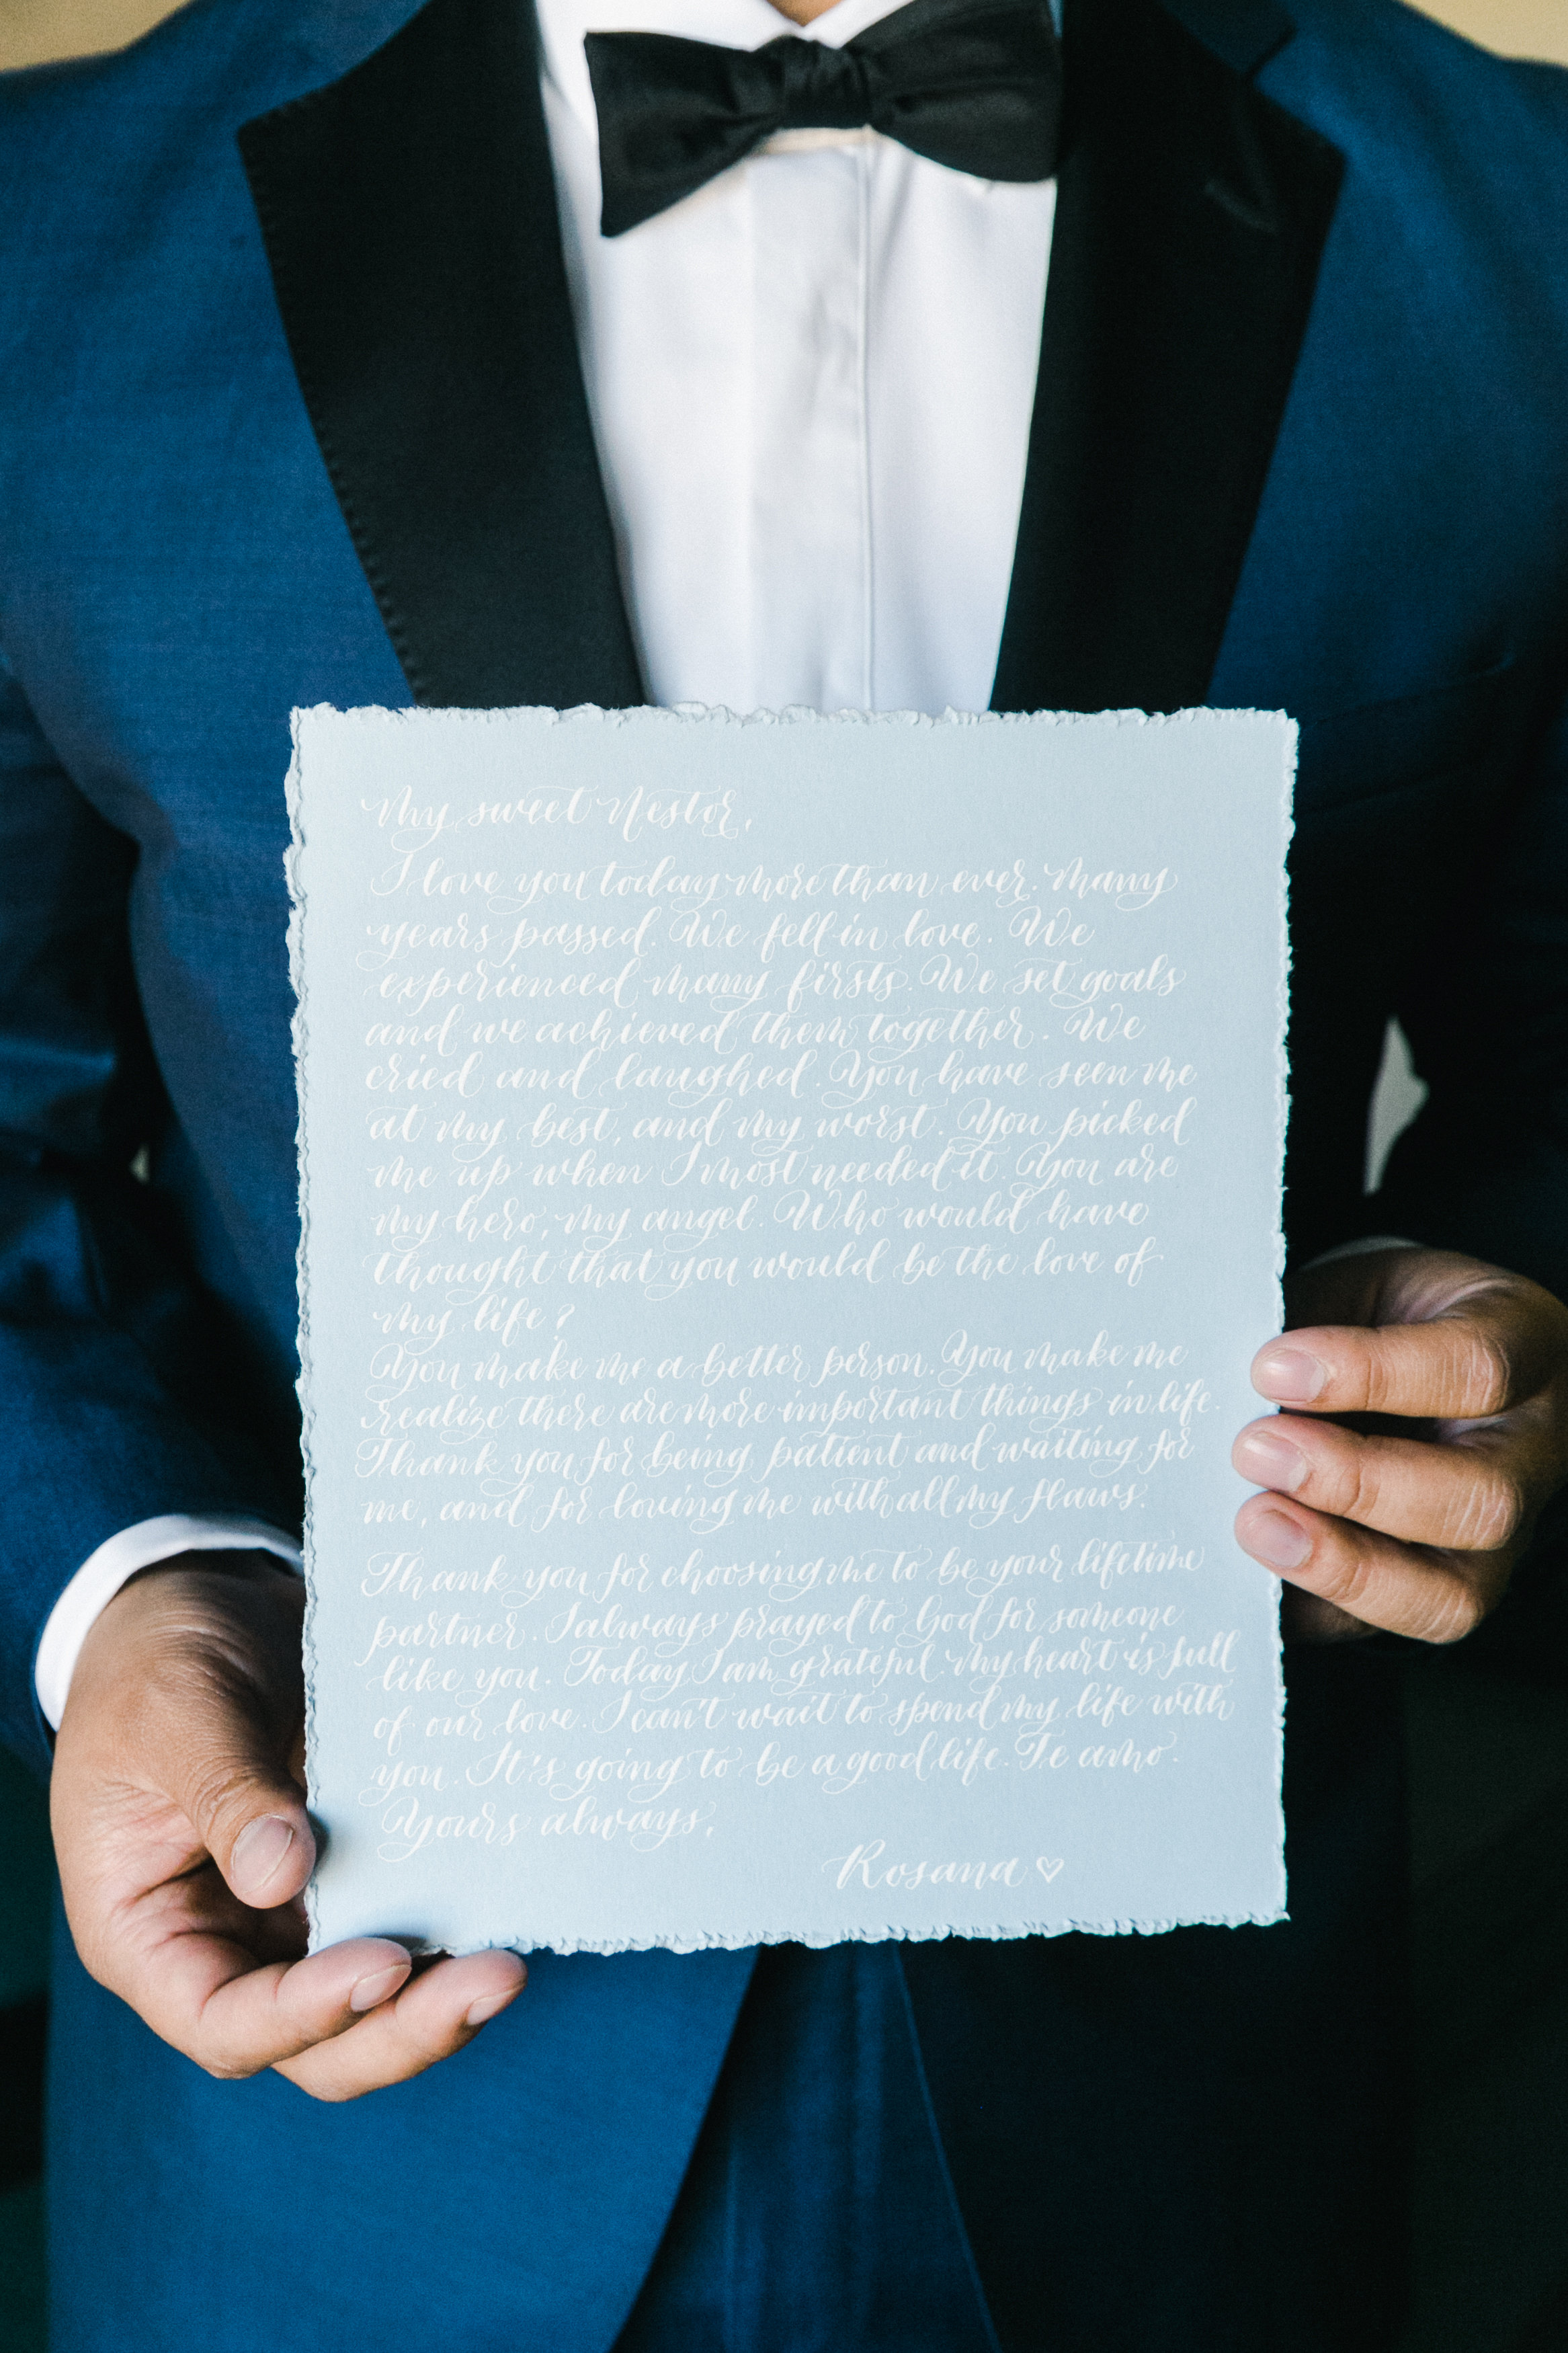 Yosemite wedding vows calligraphy items by paperloveme3.jpg